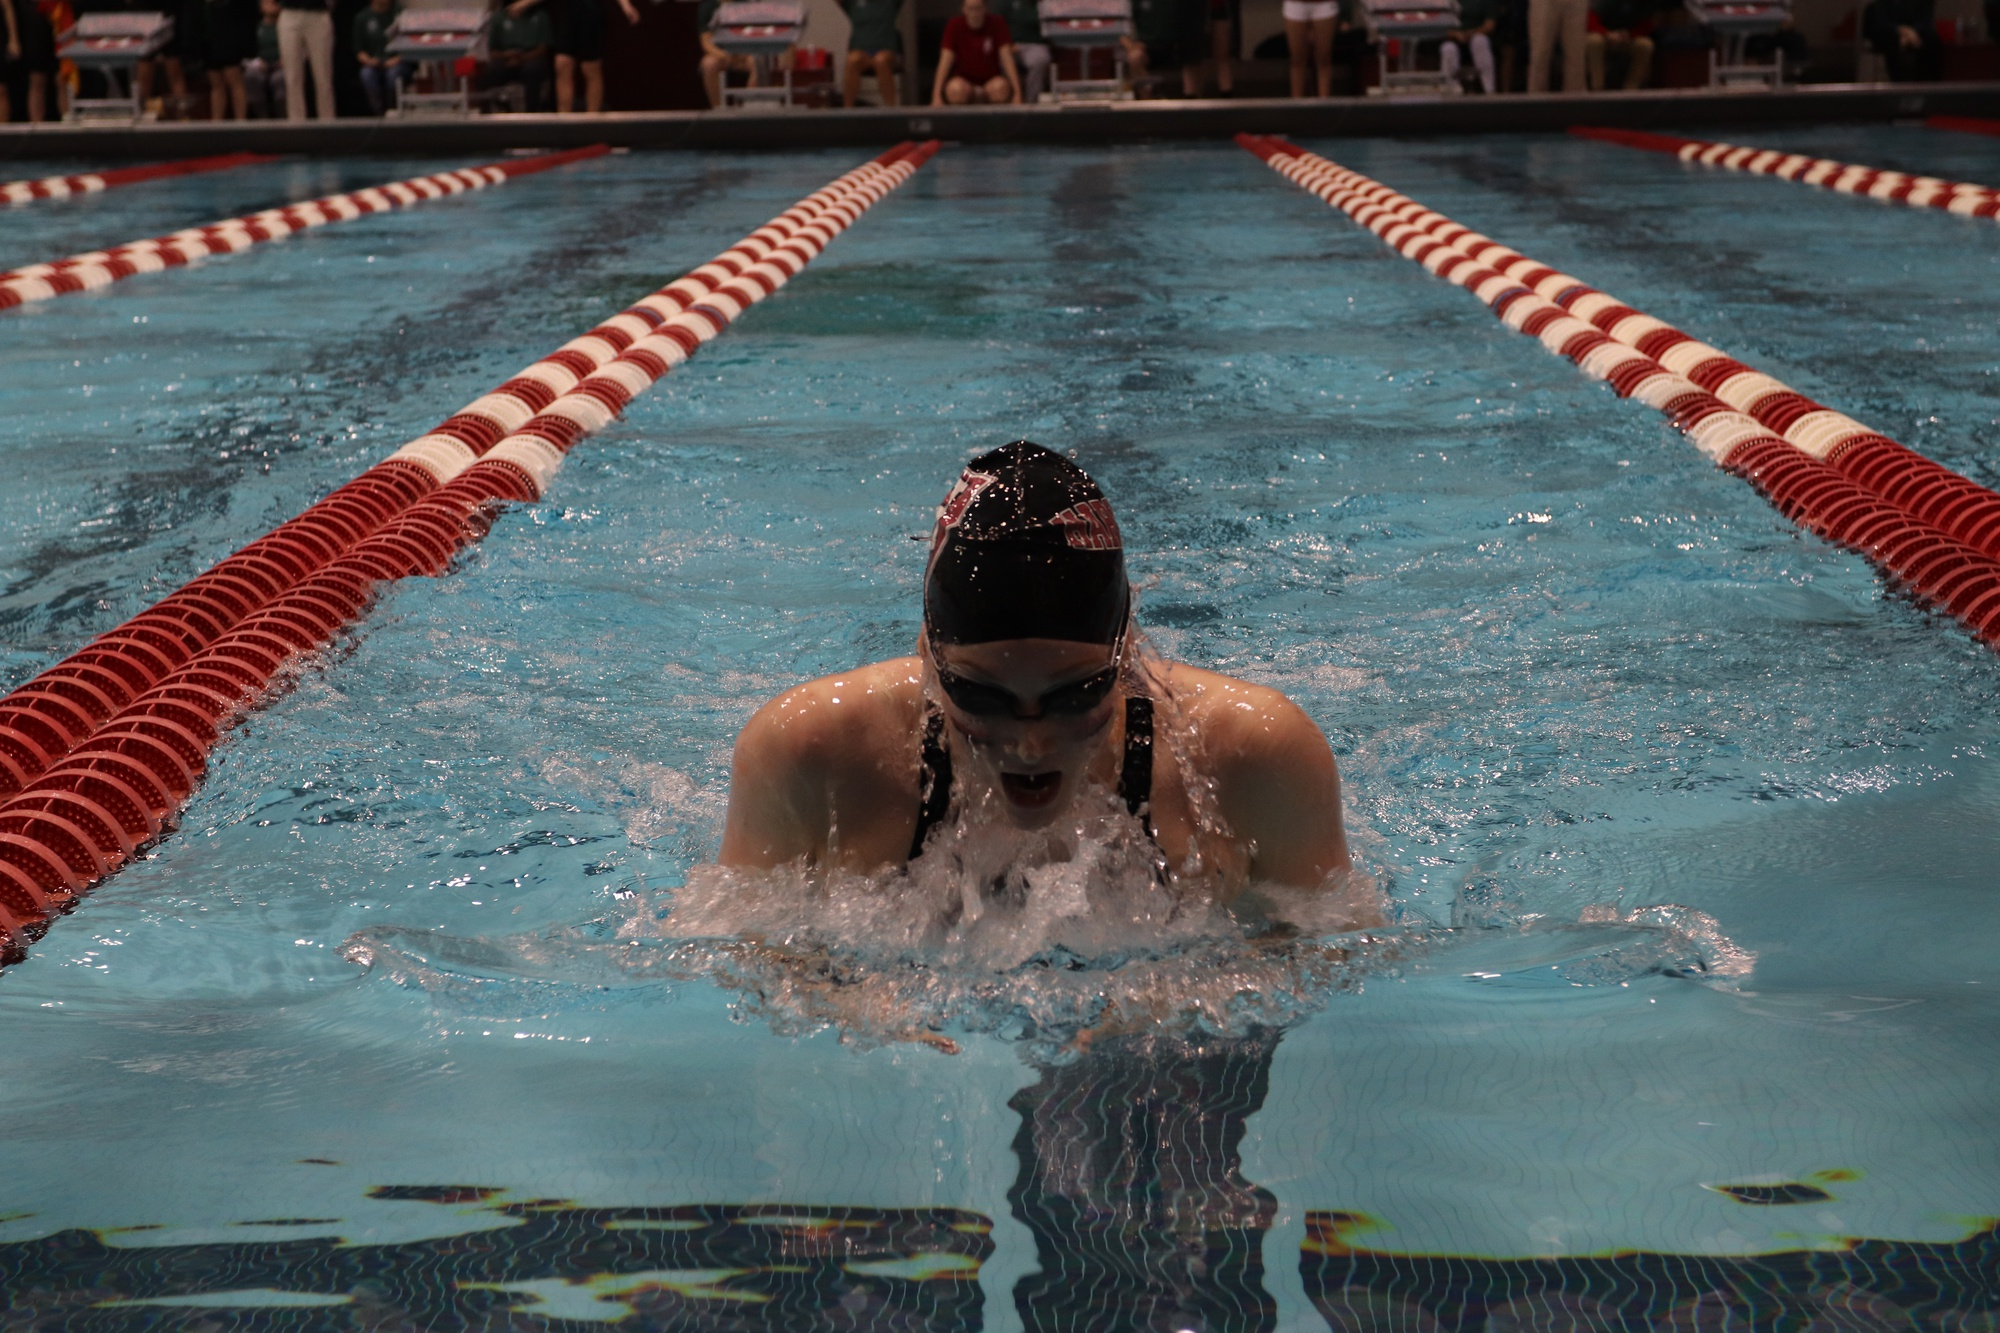 Recent meets are important opportunities for swimmers and divers to get into peak condition for Ivy League season.